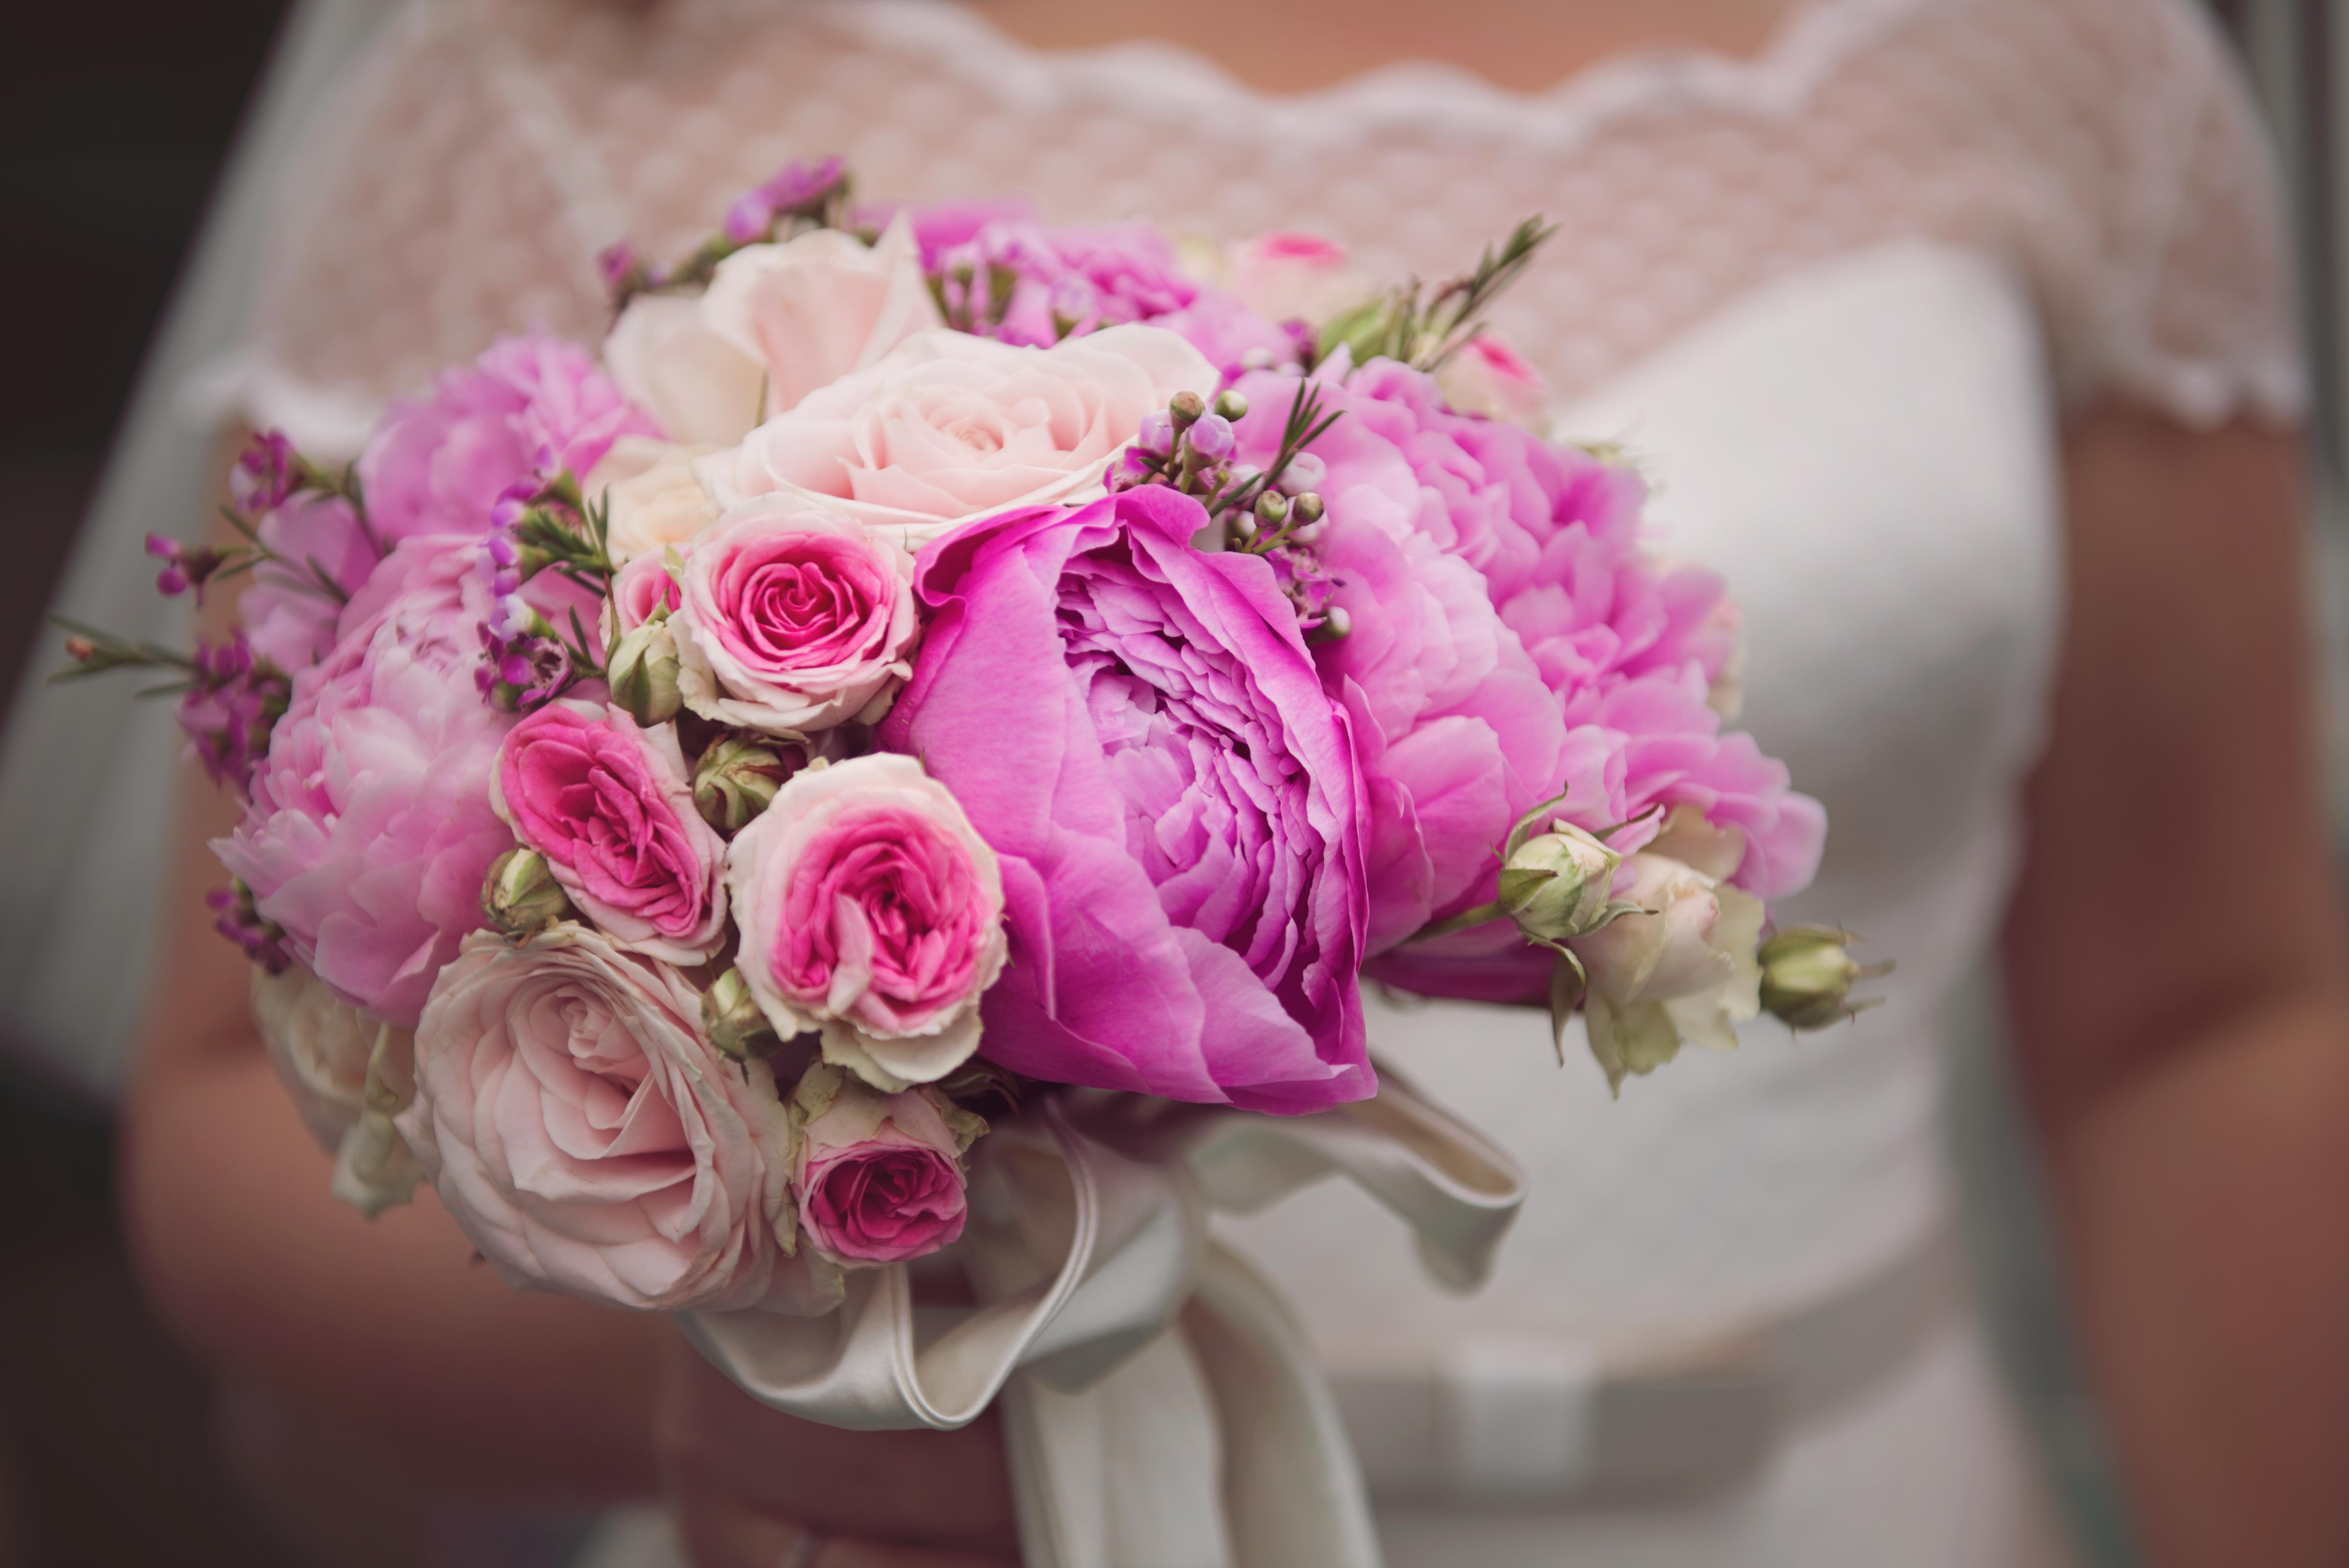 Flowers by shirley garden rose bouquets - Brides Bouquet Of Pink Peonies And Roses